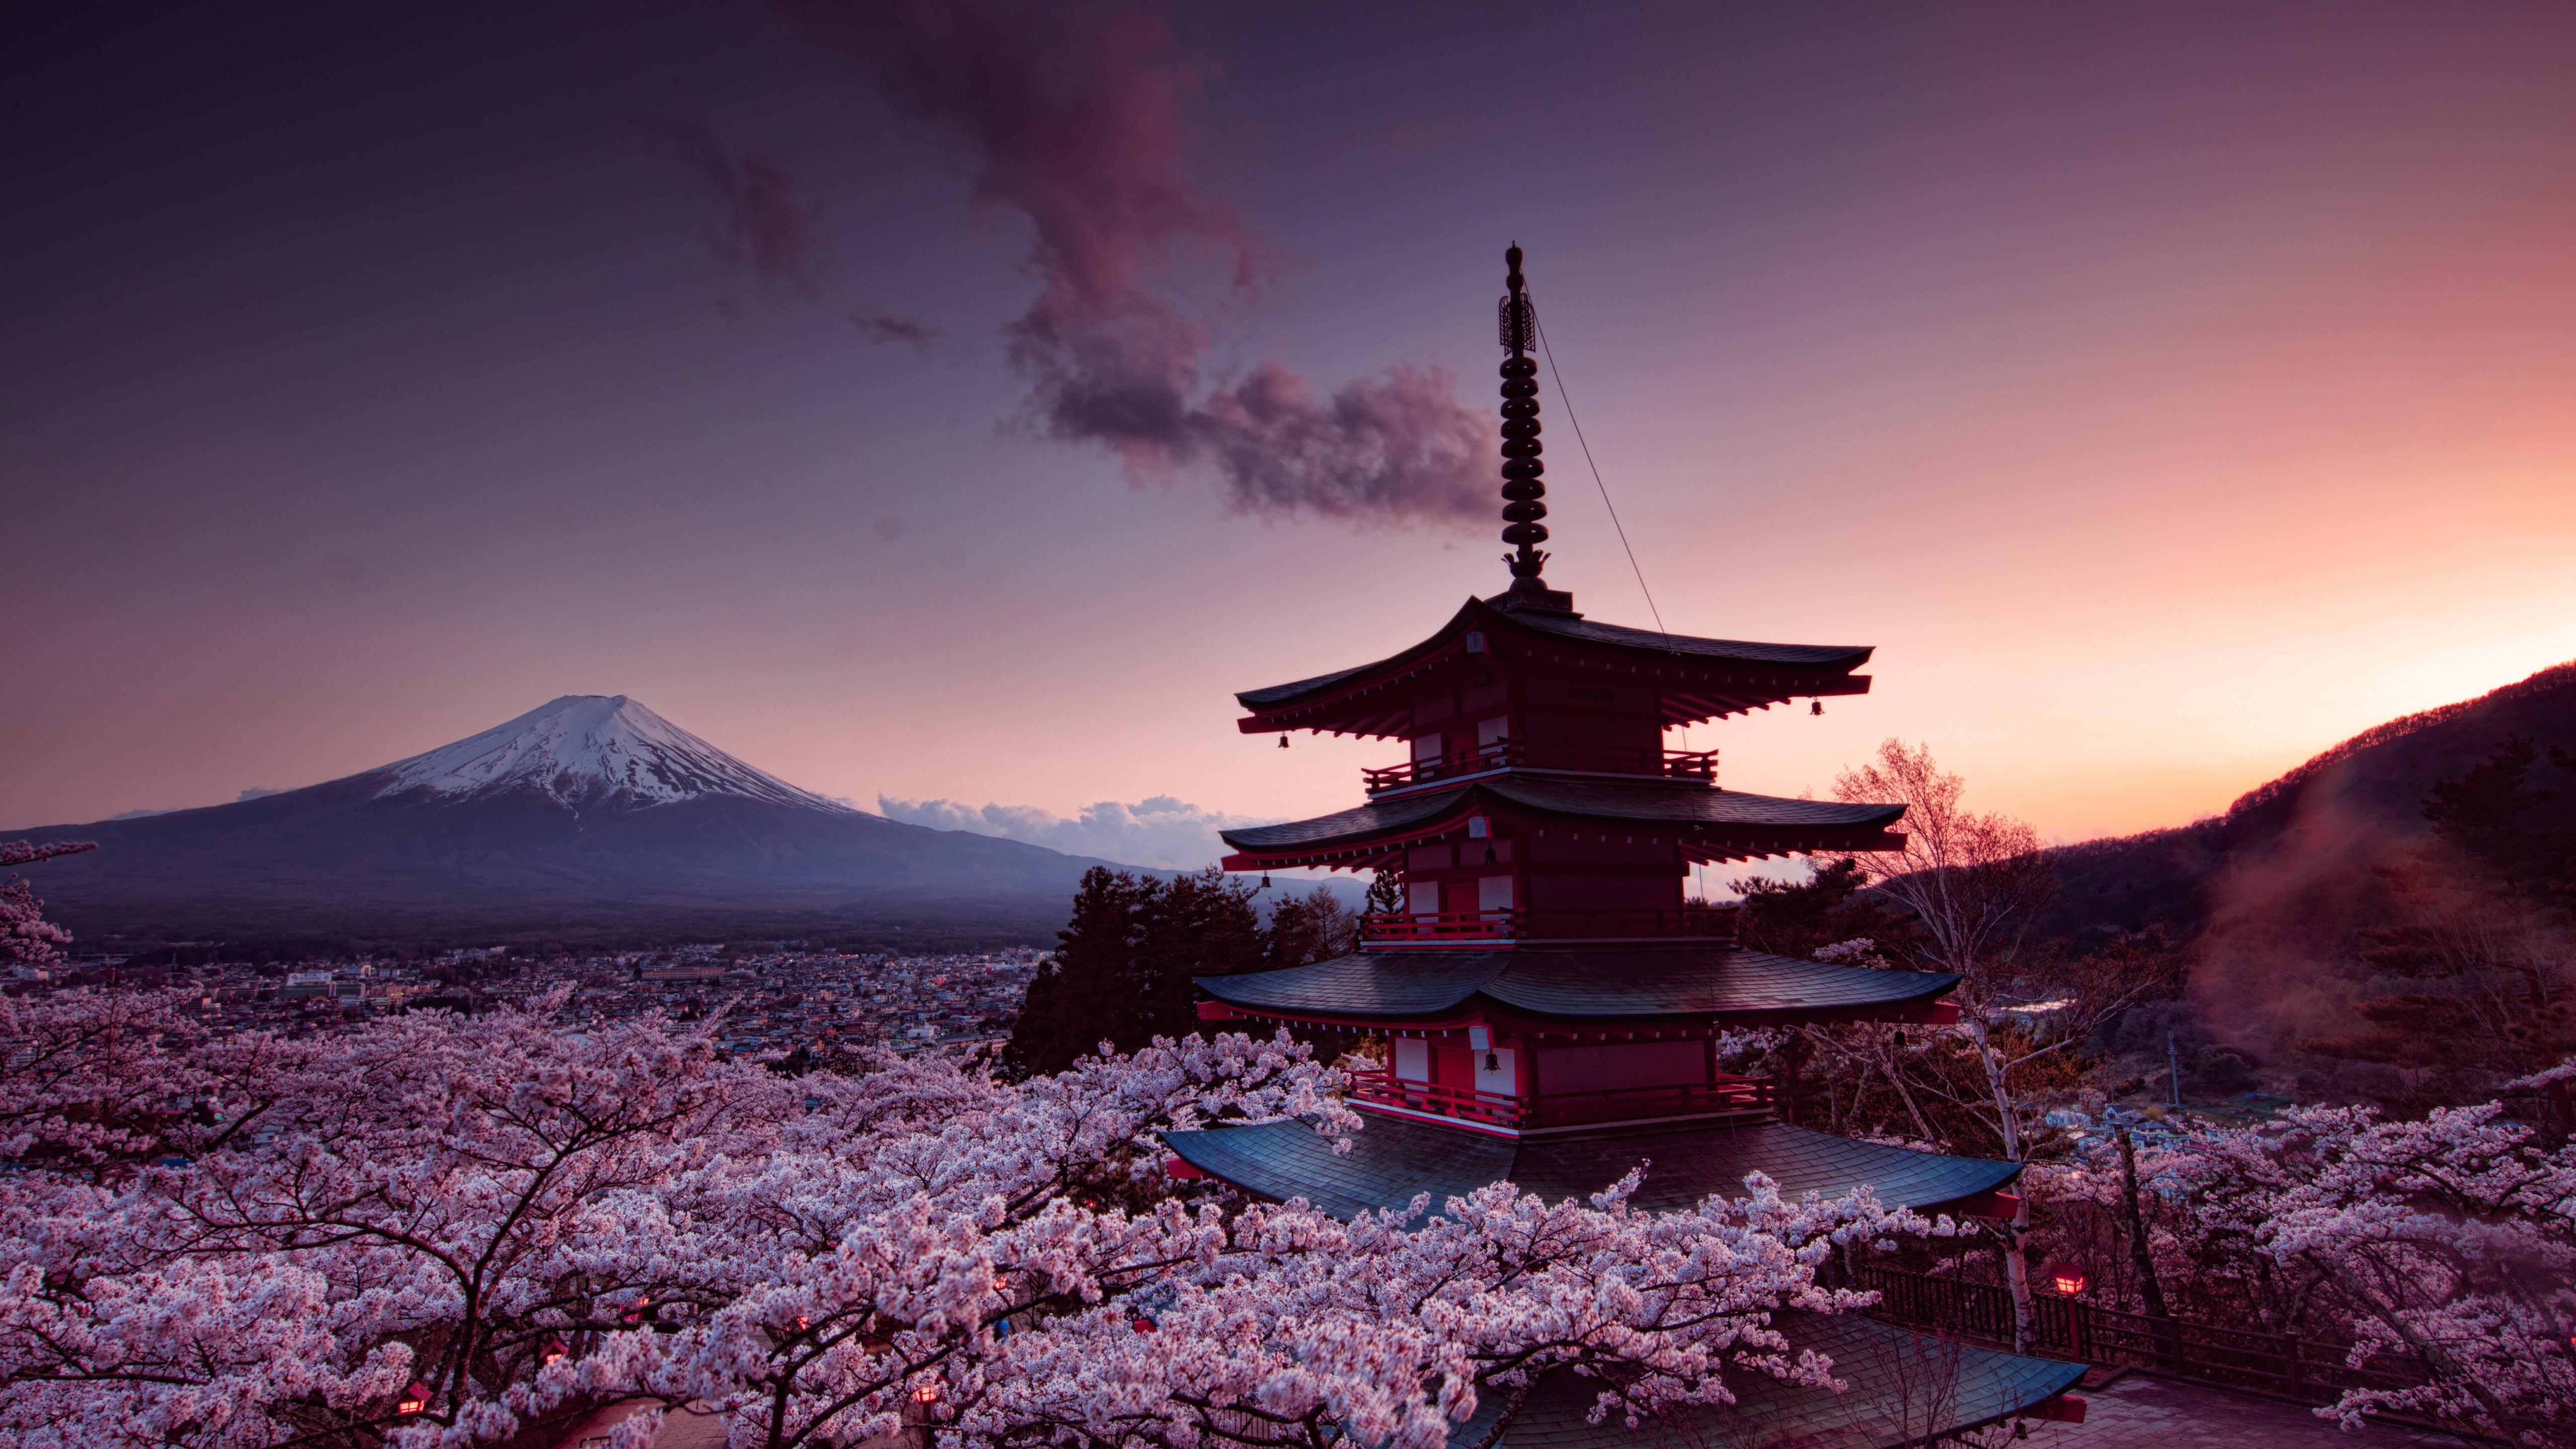 5120x2880 Churei Tower Mount Fuji In Japan 8k 5k HD 4k Wallpapers